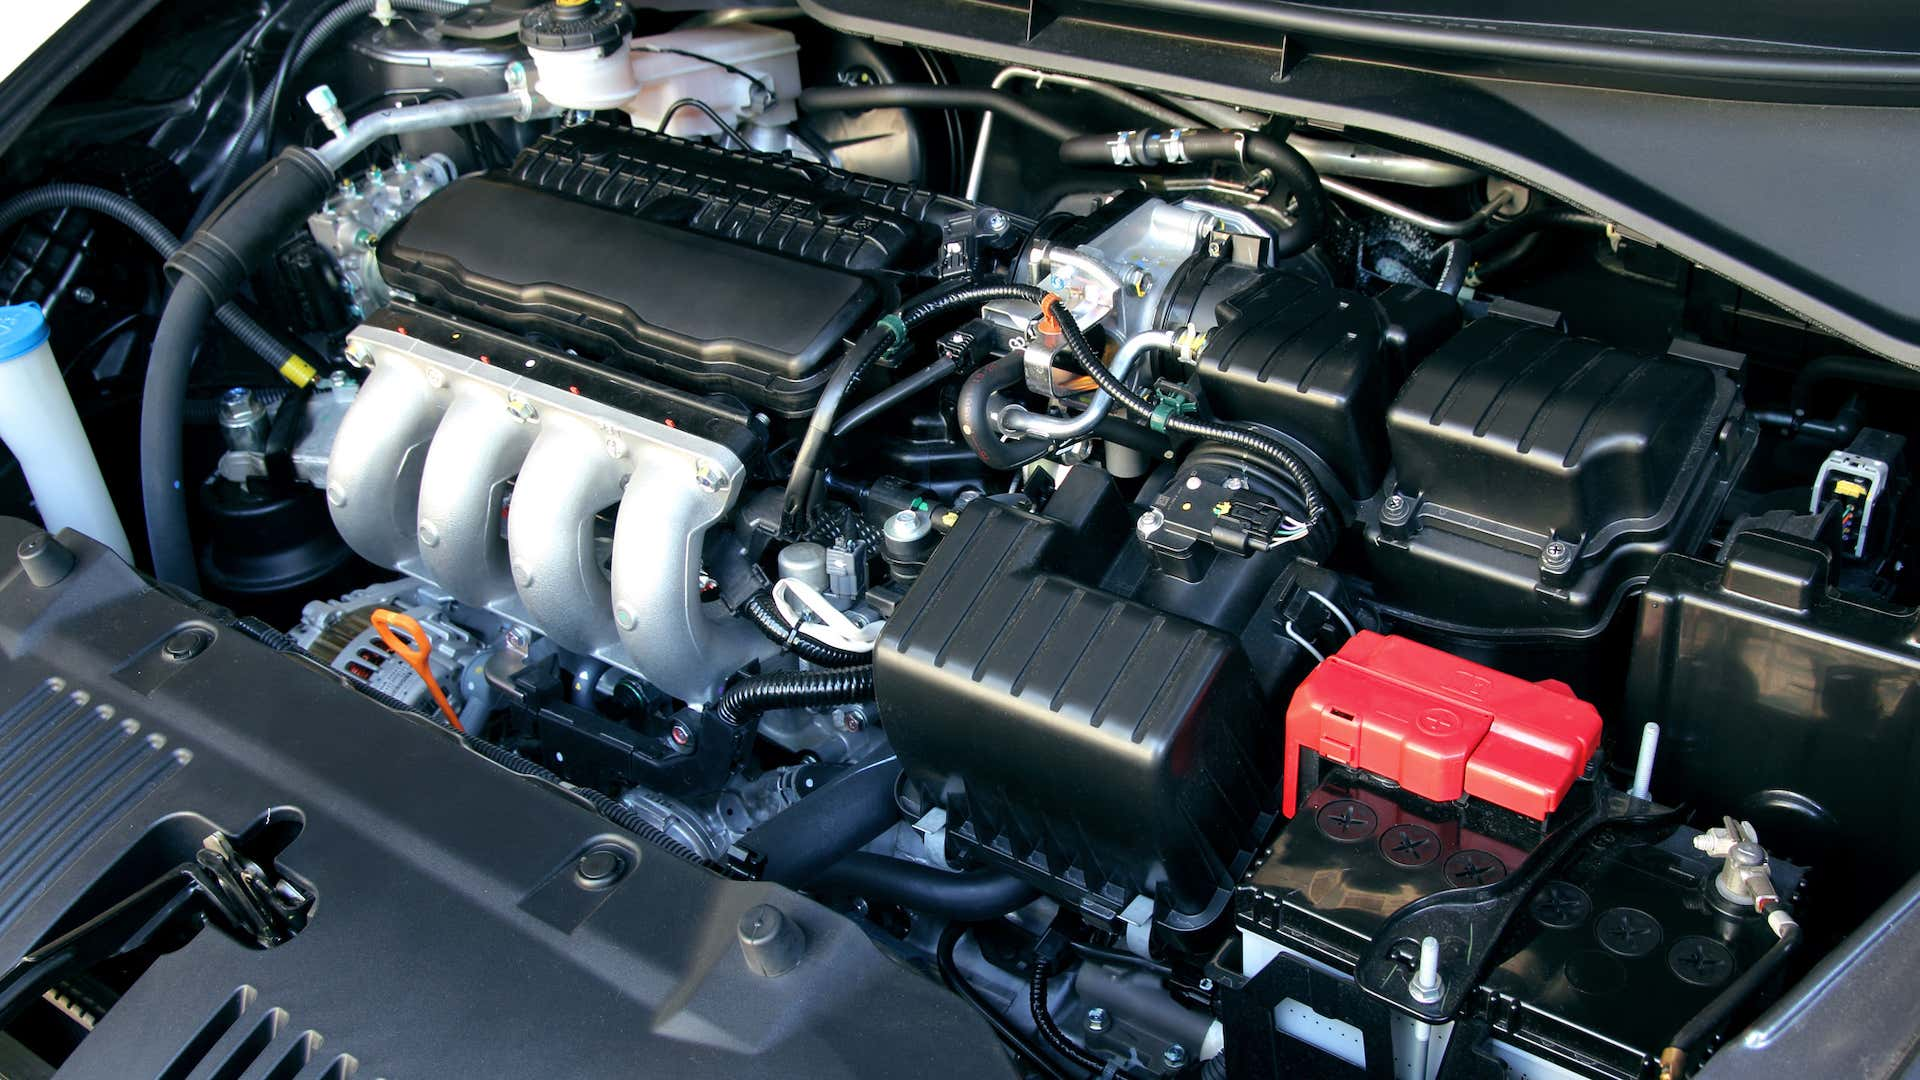 Spend some time familiarizing yourself with your car's engine bay.